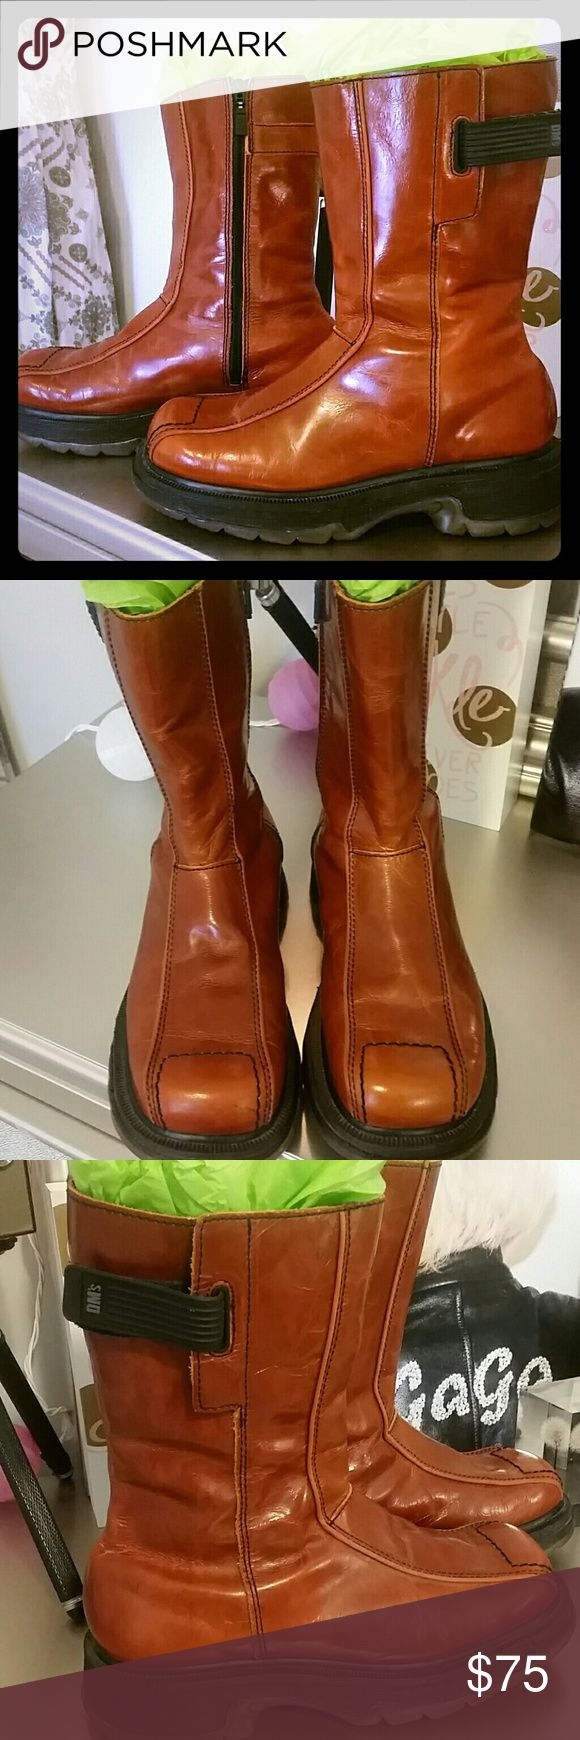 Brown/Burnt Orange Dr. Martens Unisex Boots Brown/Burnt Orange in color. Side zip up with velcro on the outside of boot at the top. Some creasing in leather from normal wear. Overall in pretty good, used condition! Men's size 6/women's size 8. Dr. Martens Shoes Boots